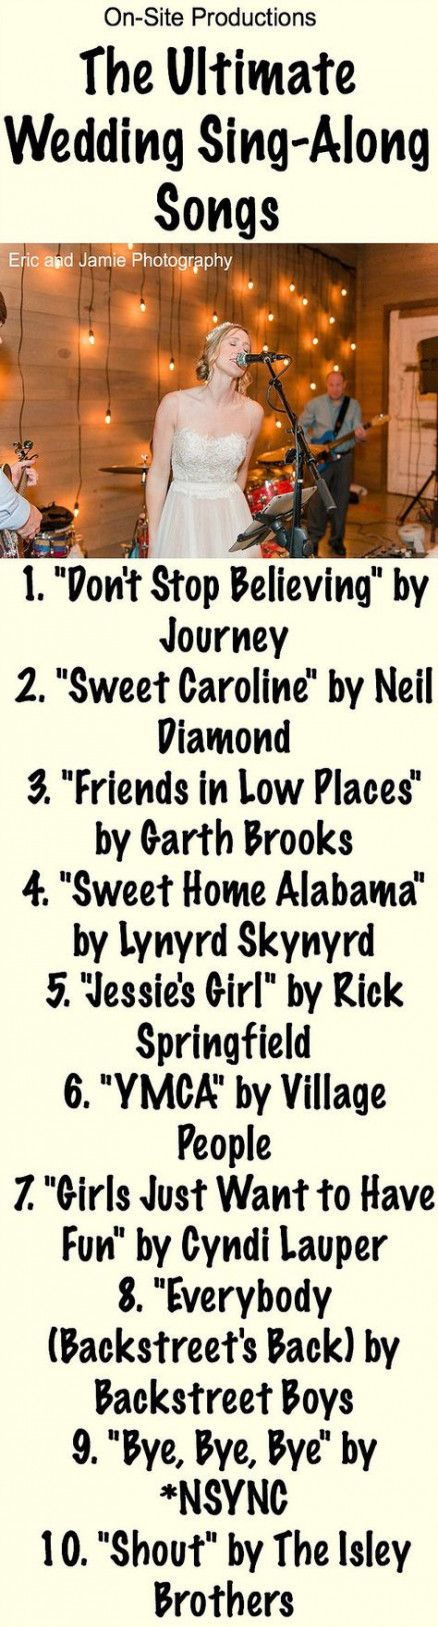 Trendy wedding songs to sing at ceremony Ideas #wedding